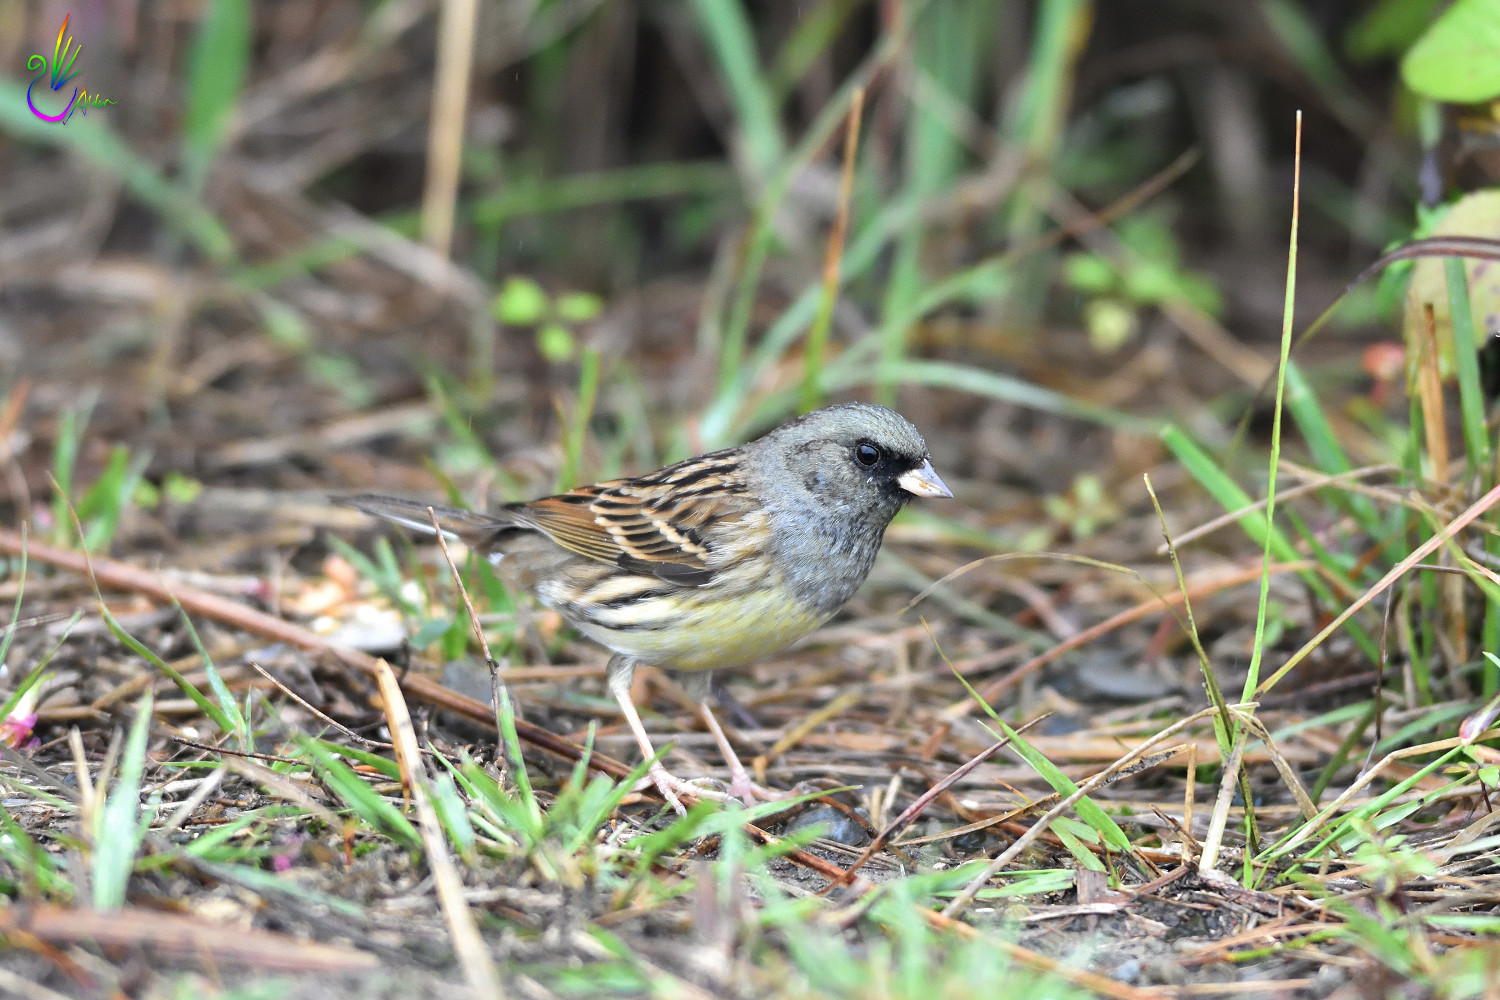 Black-faced_Bunting_7543